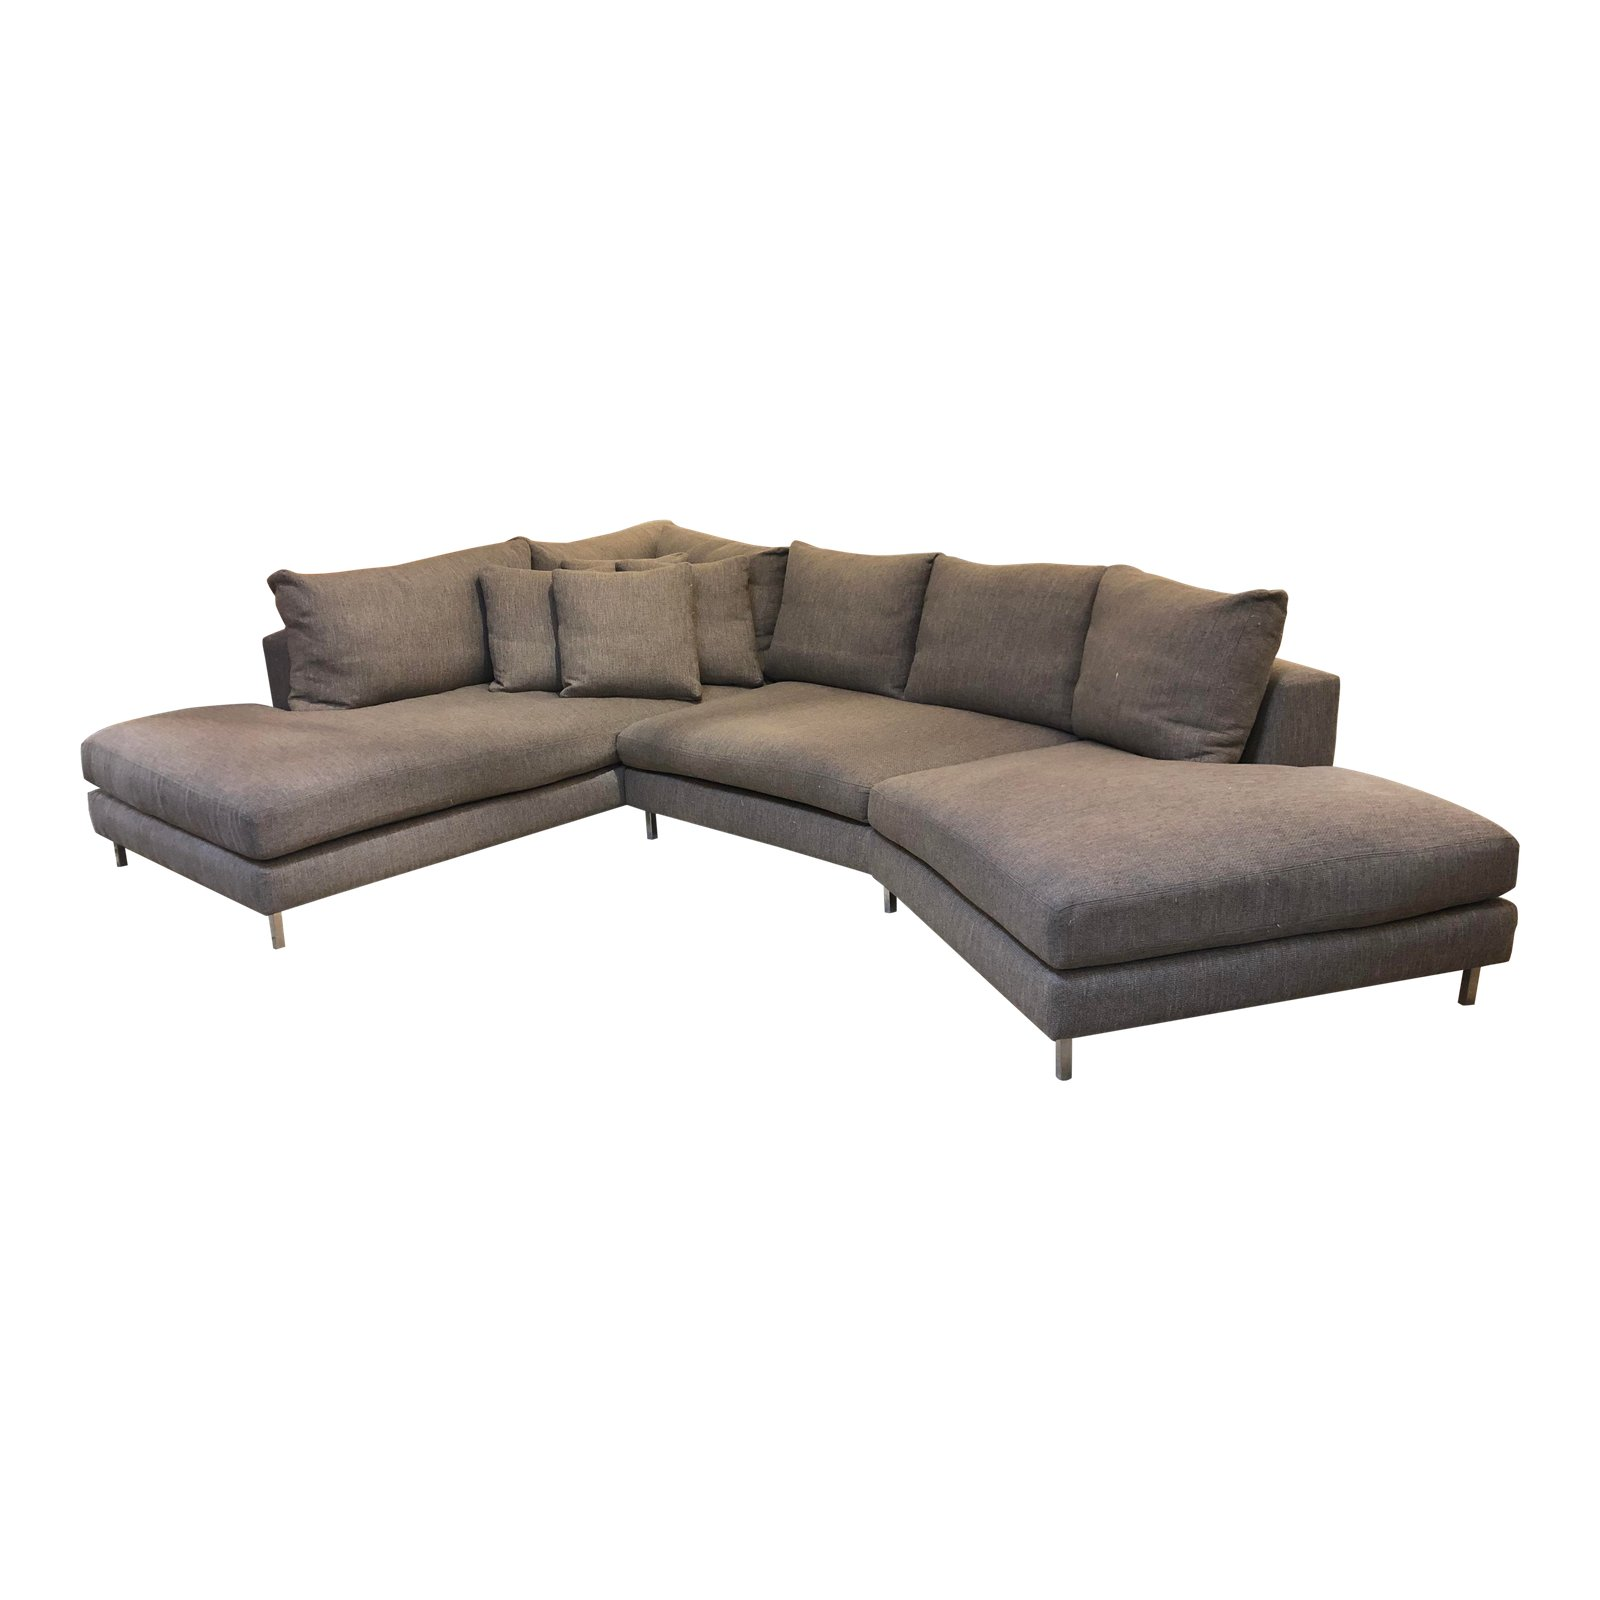 Amazing Room Board Hayes Custom Left Back Angled Sectional Sofa Pabps2019 Chair Design Images Pabps2019Com